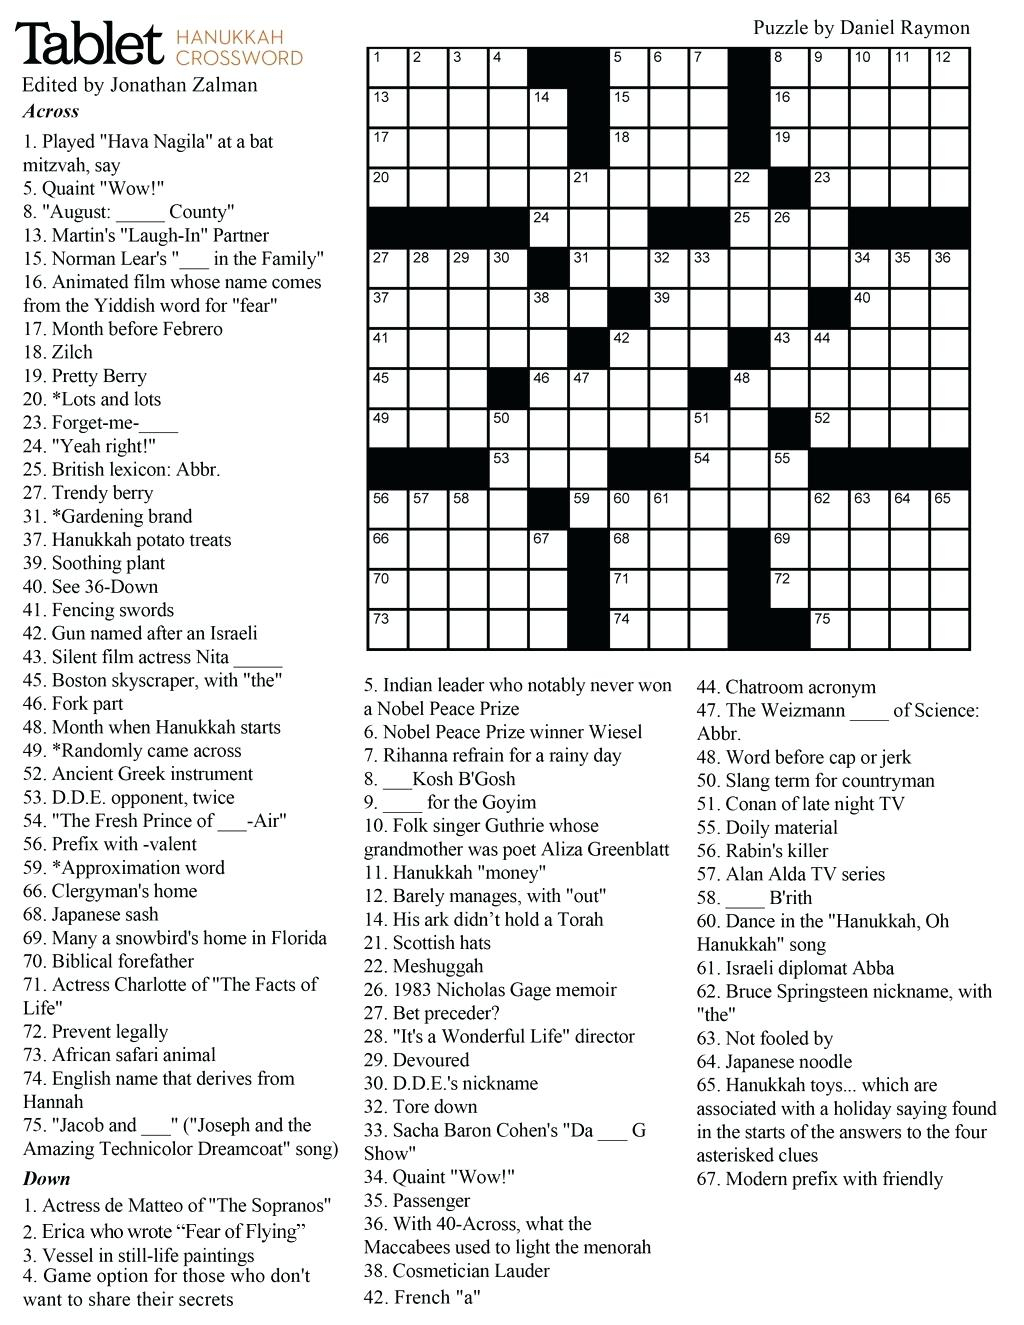 Middle School Crossword Puzzles Raunchy Some Of The Words In The - Printable Puzzles Middle School